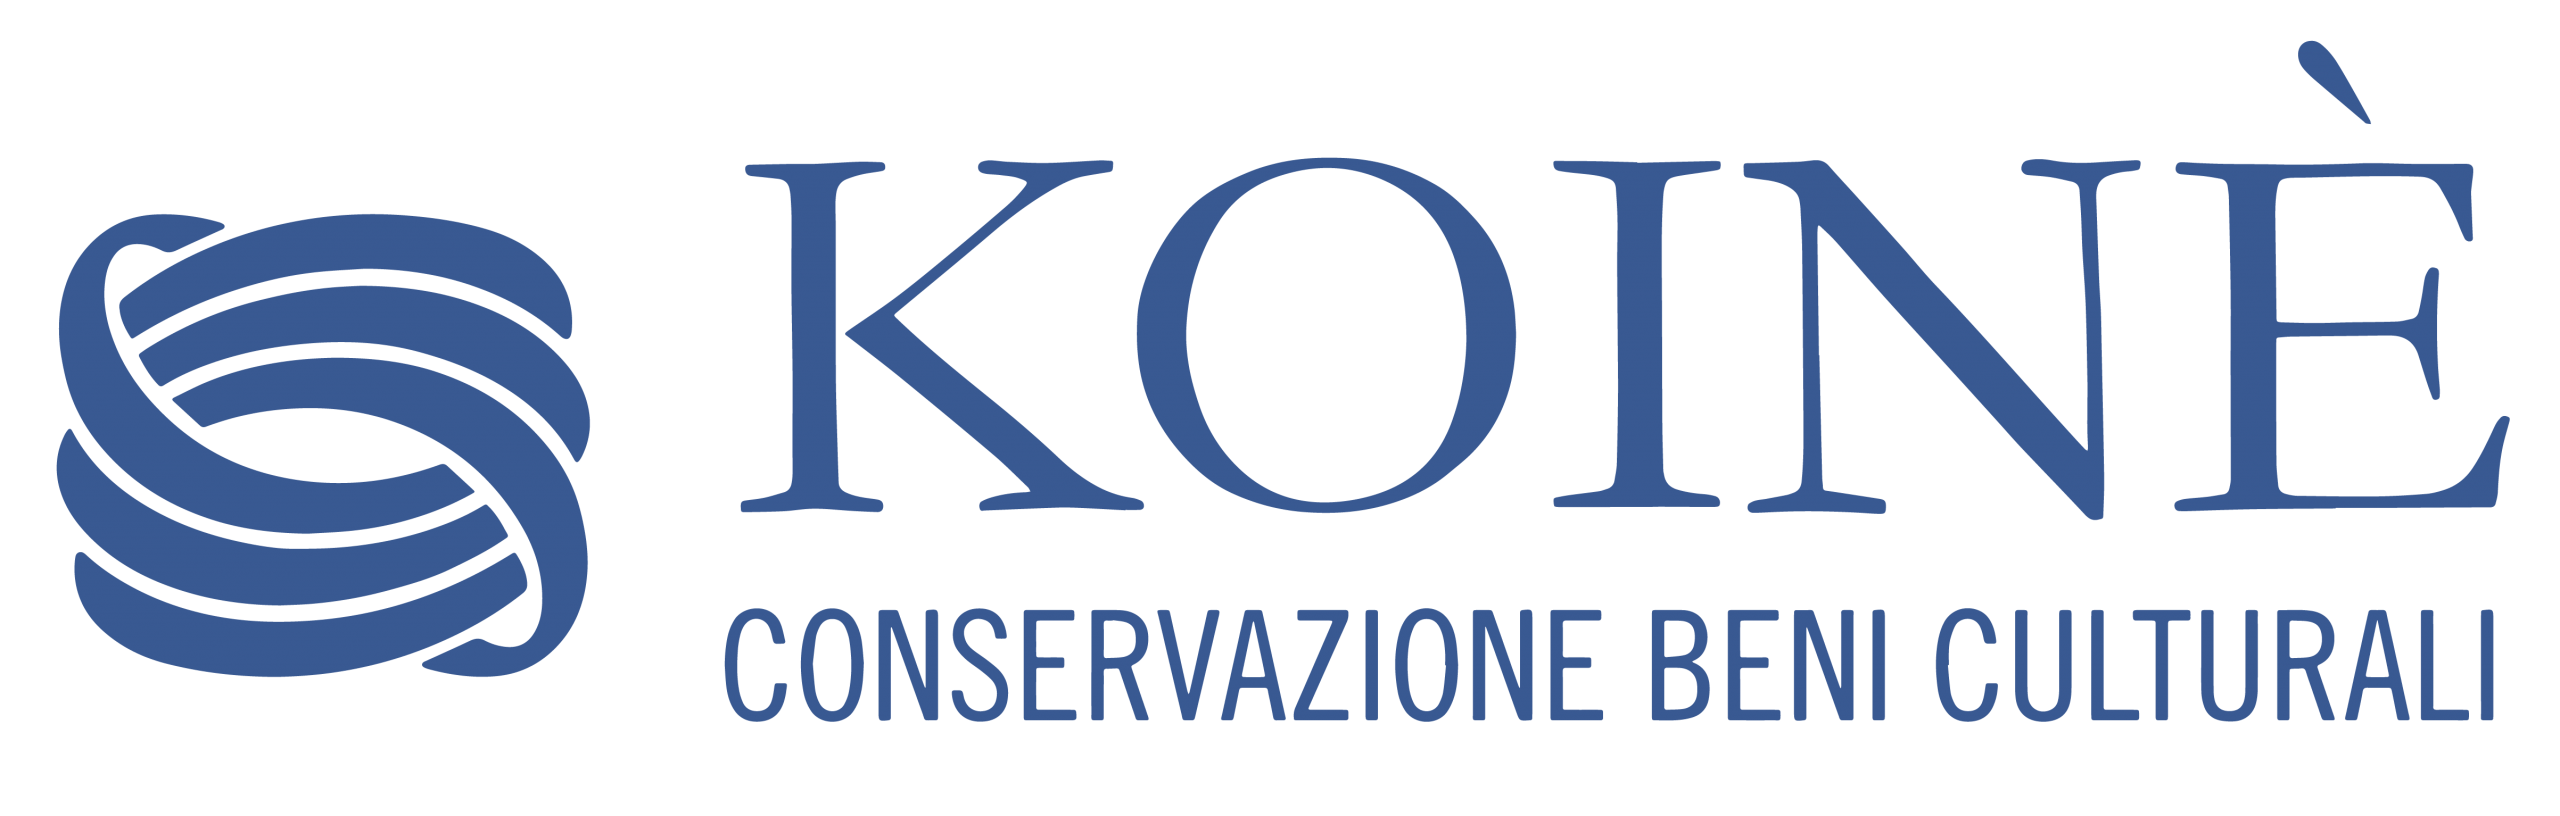 Koinè Conservazione e Restauro